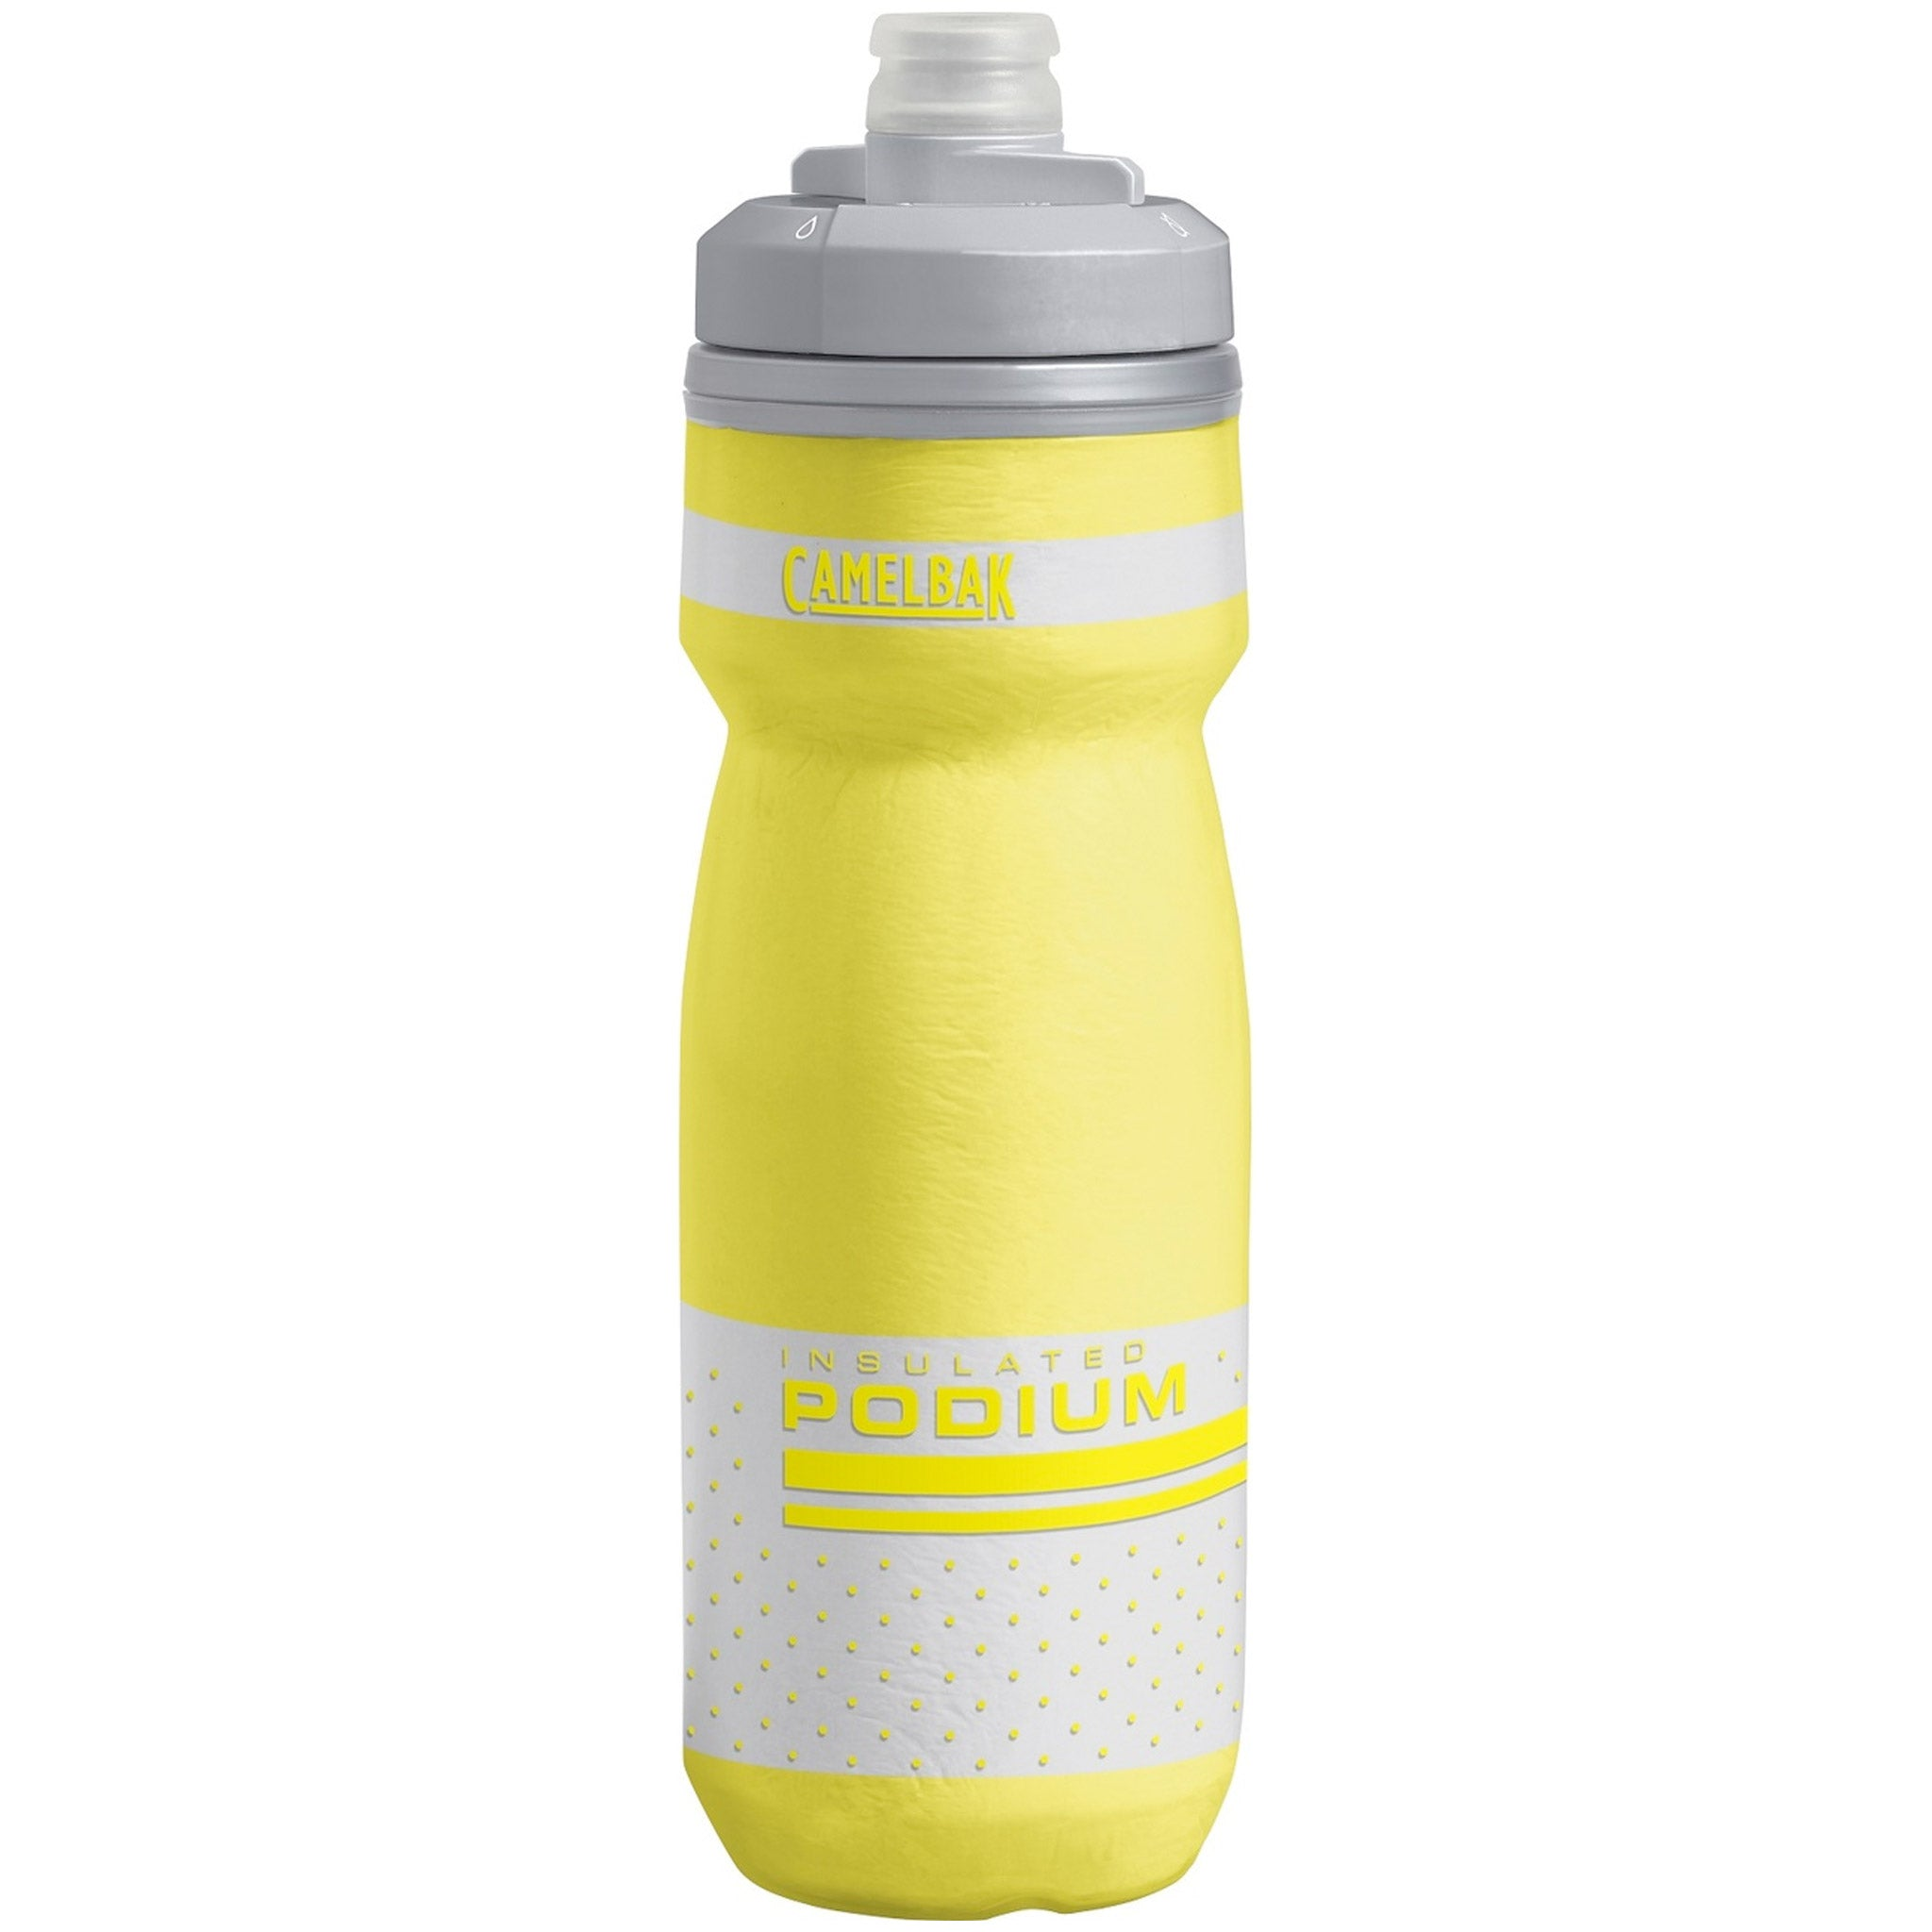 Camelbak Podium Chill Bottle 600ml, Reflective Yellow, buy now at Woolys Wheels Sydney